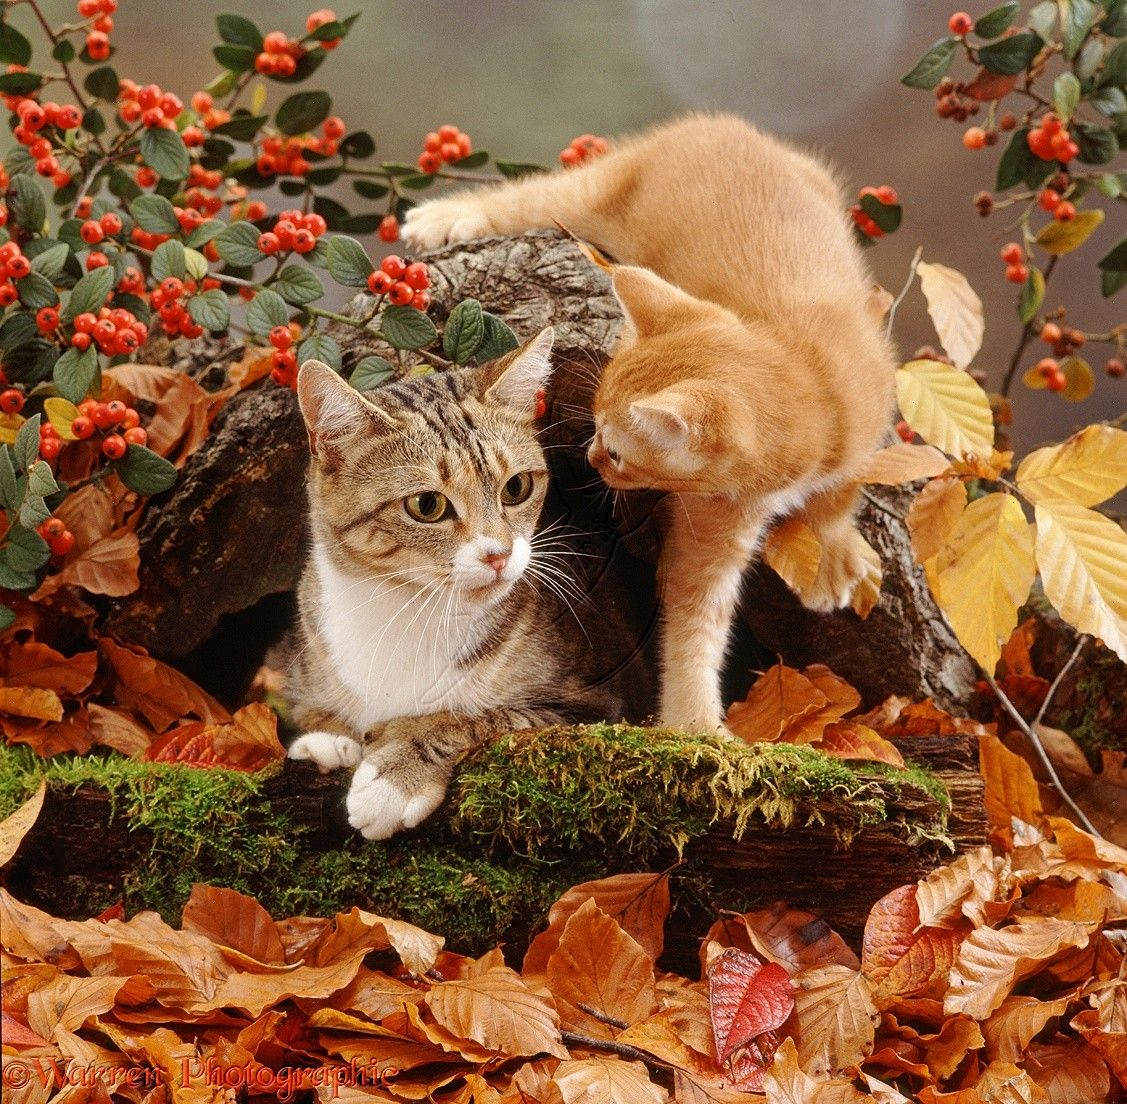 Cat With Ginger Kitten Among Autumn Leaves Photo Fall Cats Cats Cute Cats